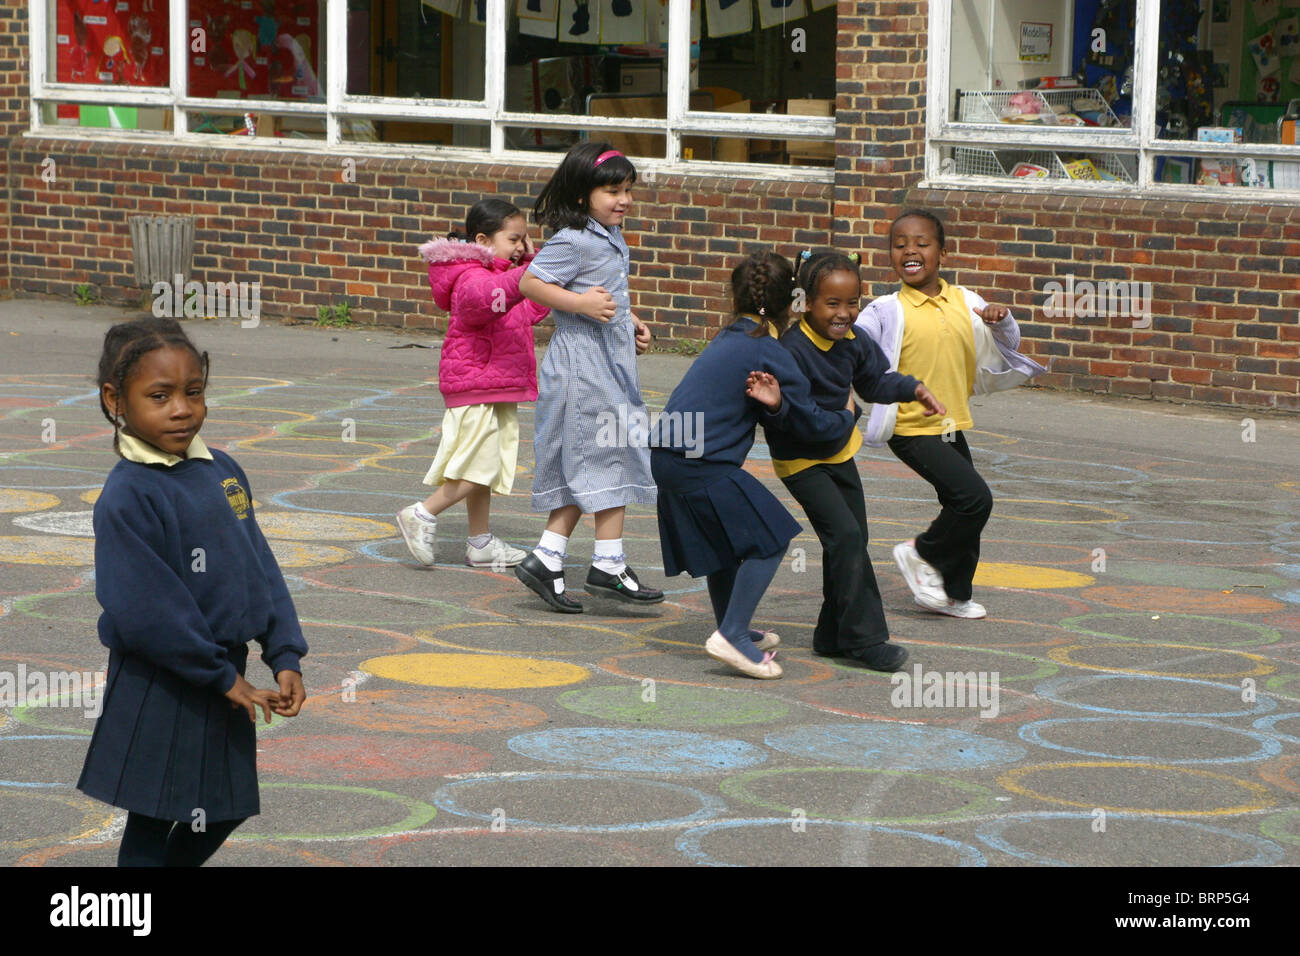 Children playing in the school playground